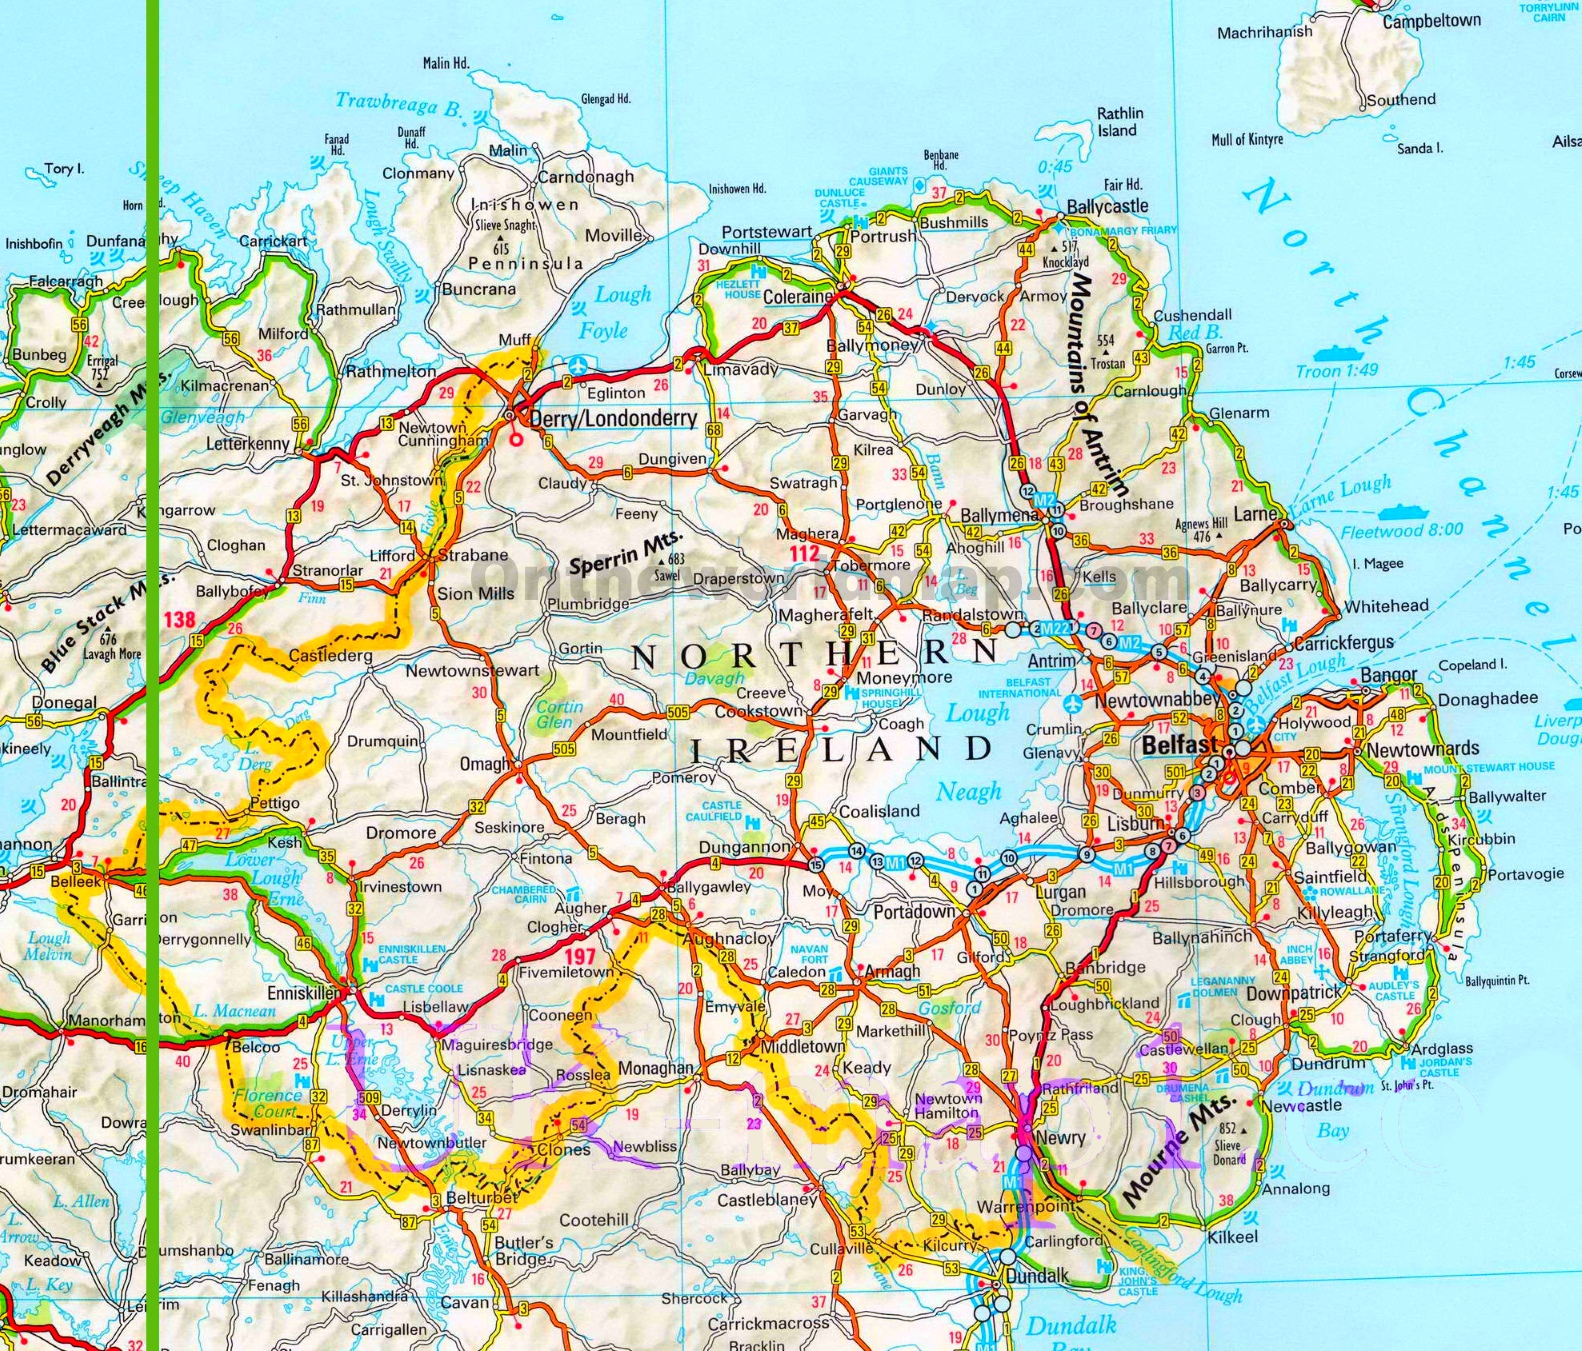 Ireland Road Map Northern Ireland road map Ireland Road Map